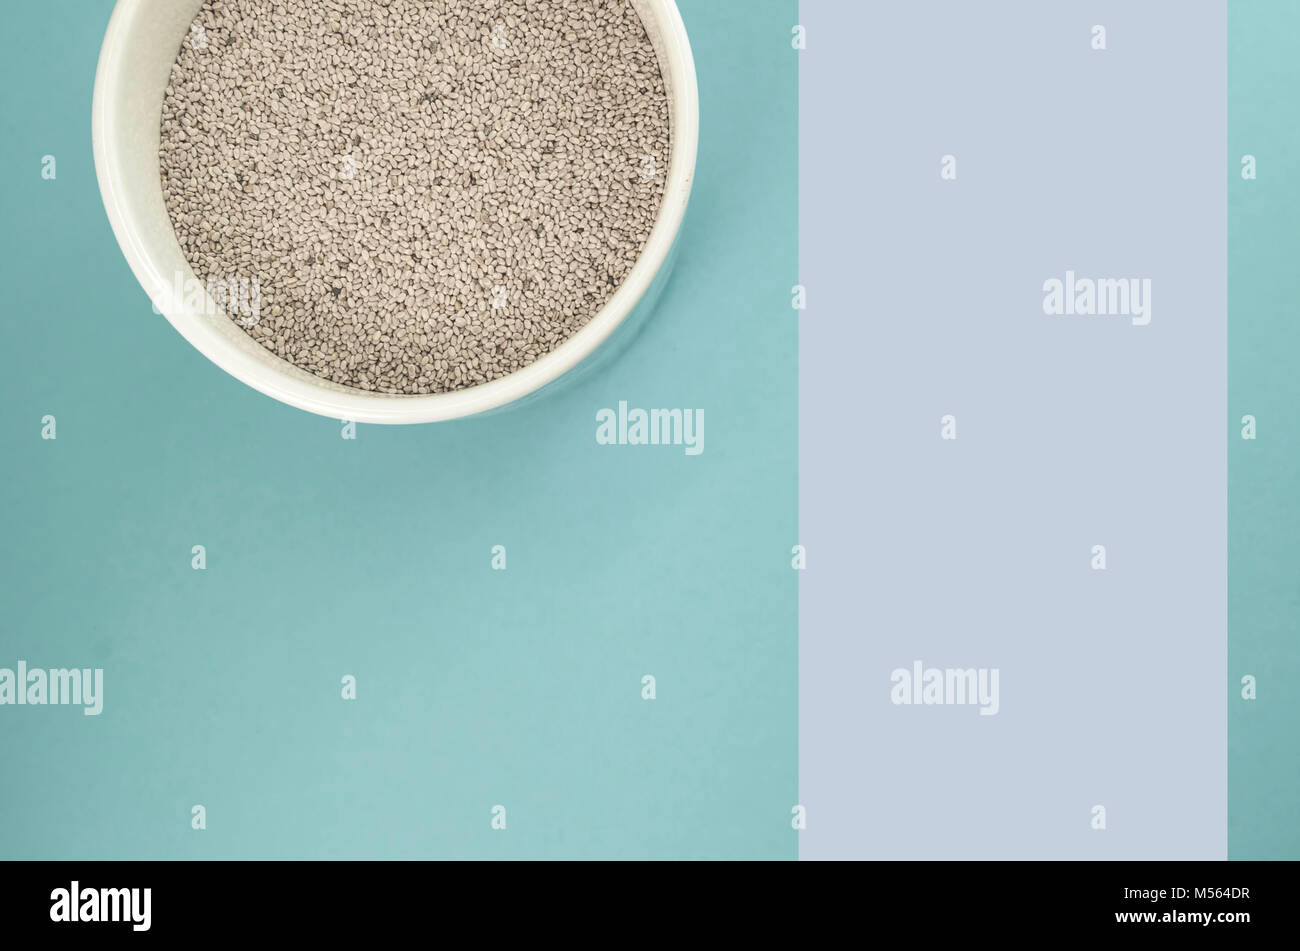 dry chia seeds in a white porcelain jar - directly above view - Stock Image